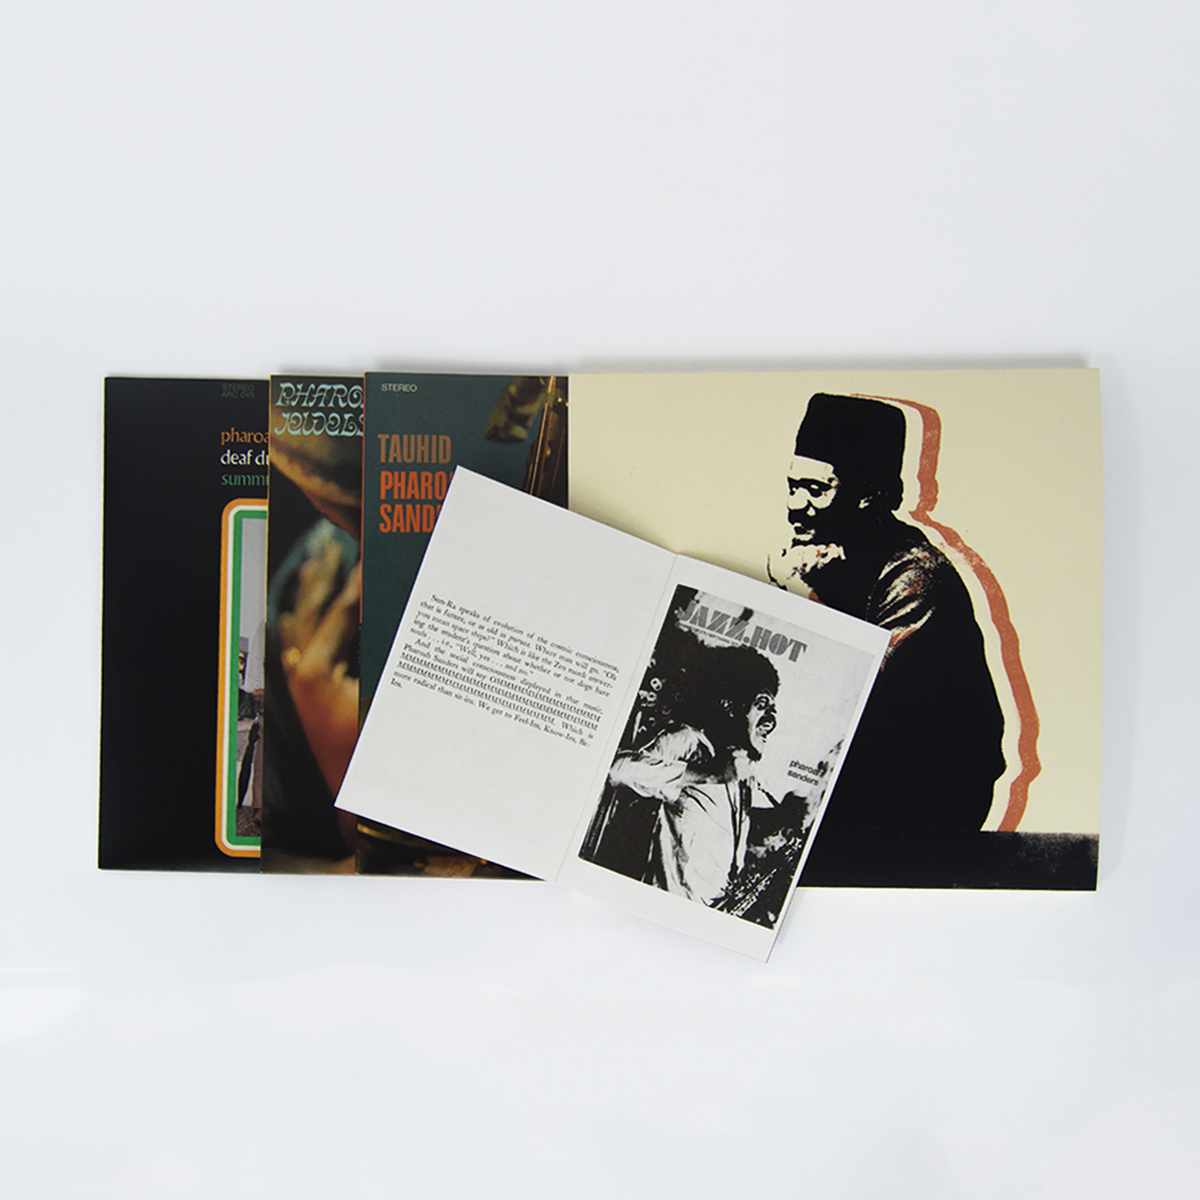 3 Pharoah Sanders LP reissues coming November 10